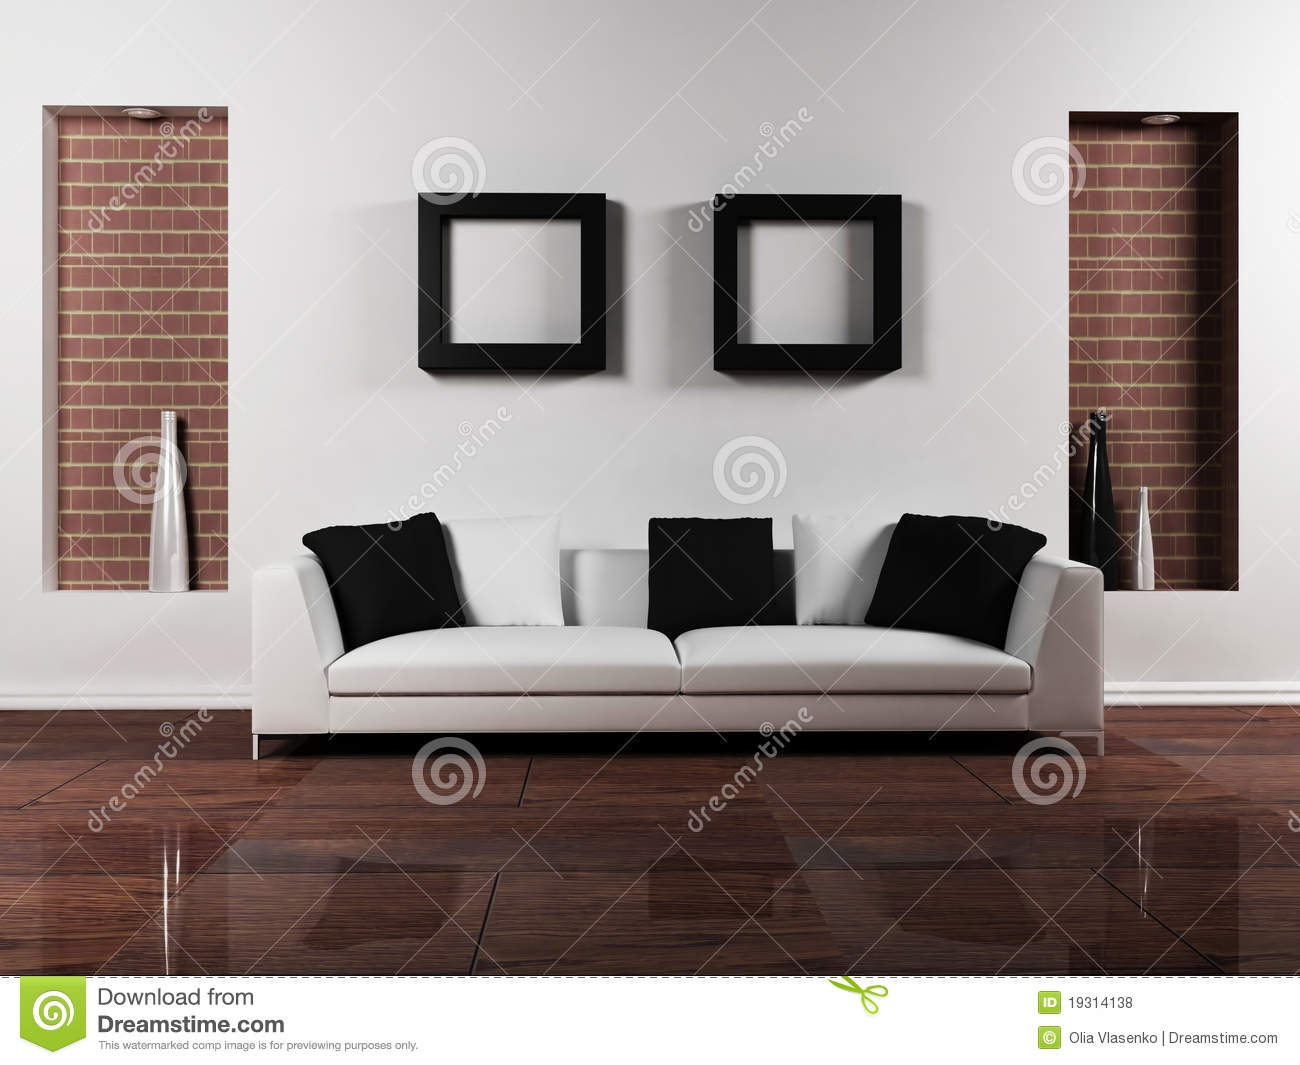 Modern interior design of living room royalty free stock for Modern drawing room interior design